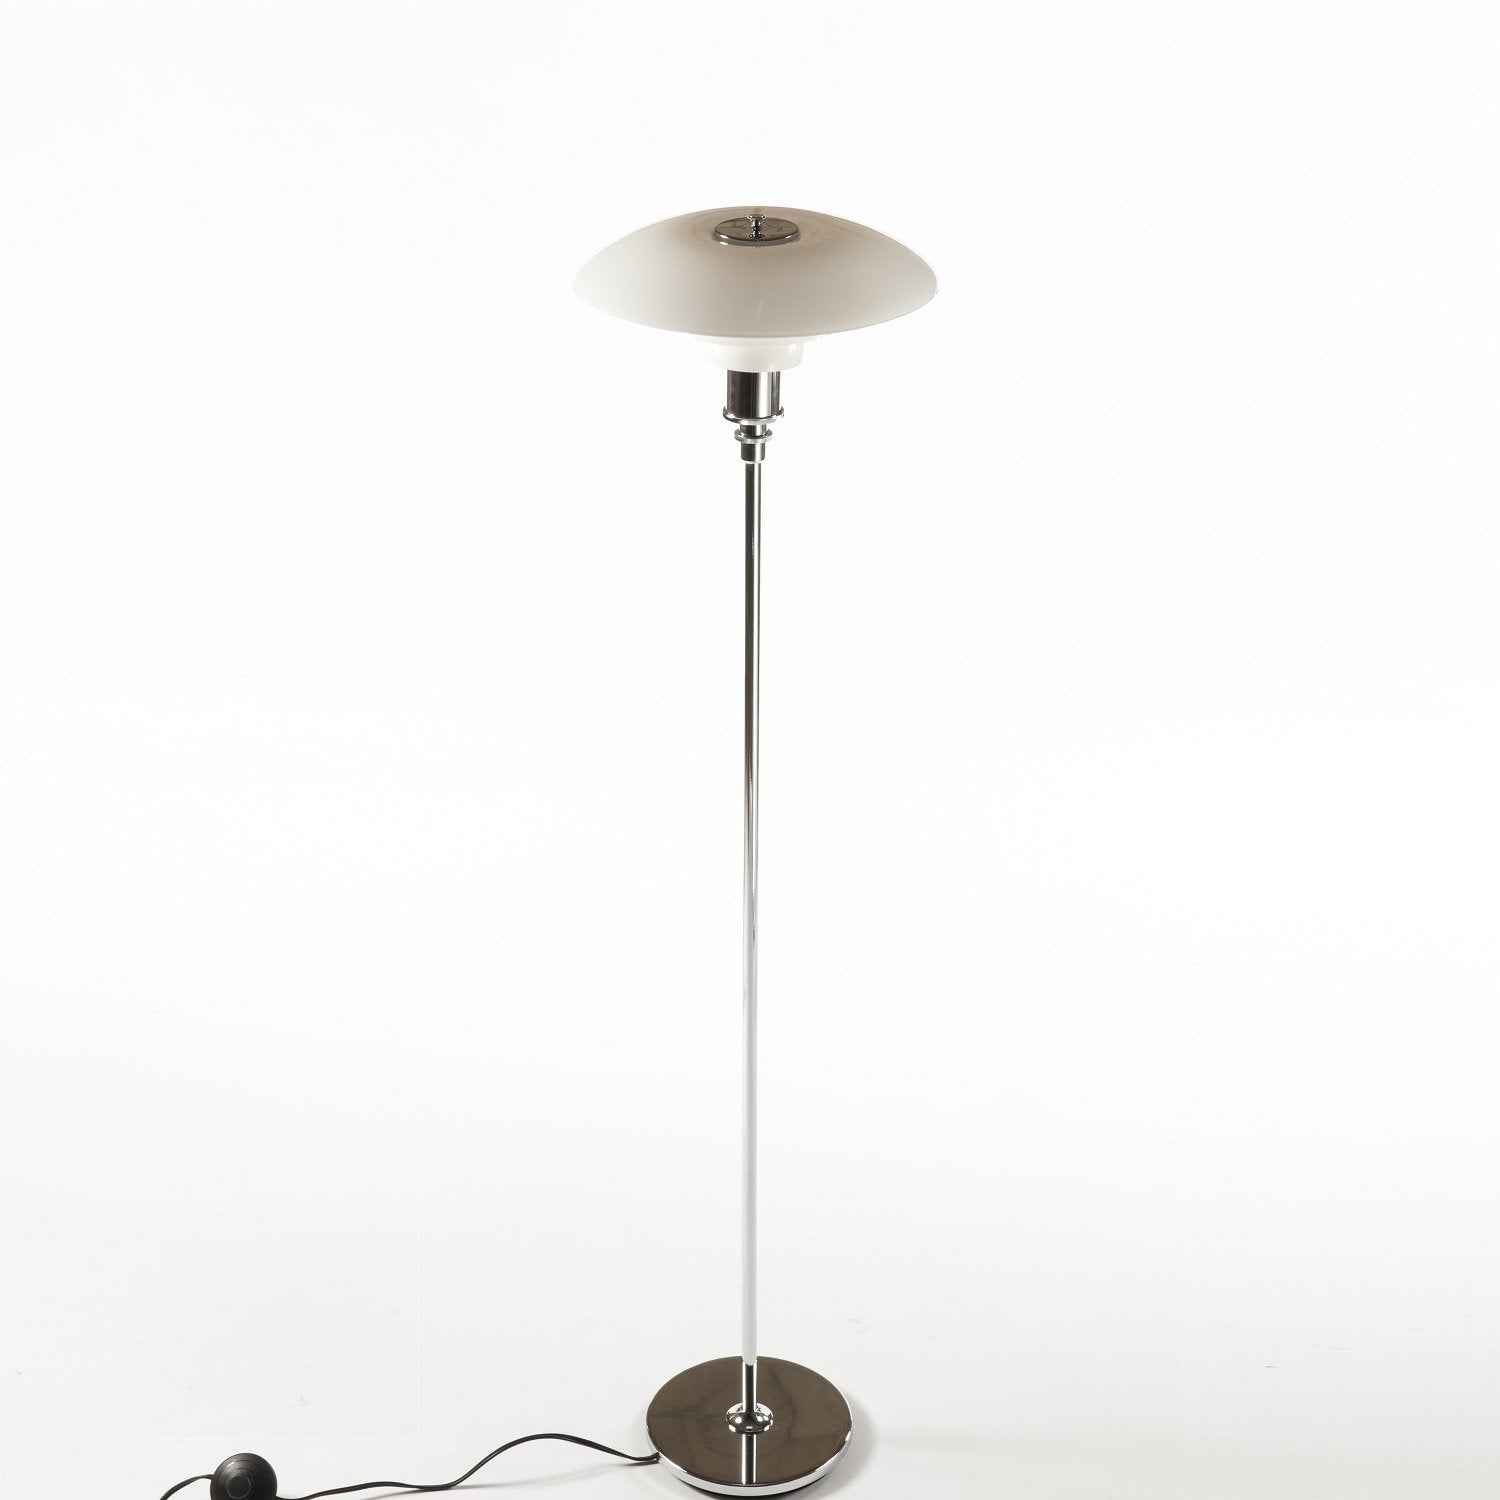 [LBF008CHR] The Herlev Floor Lamp